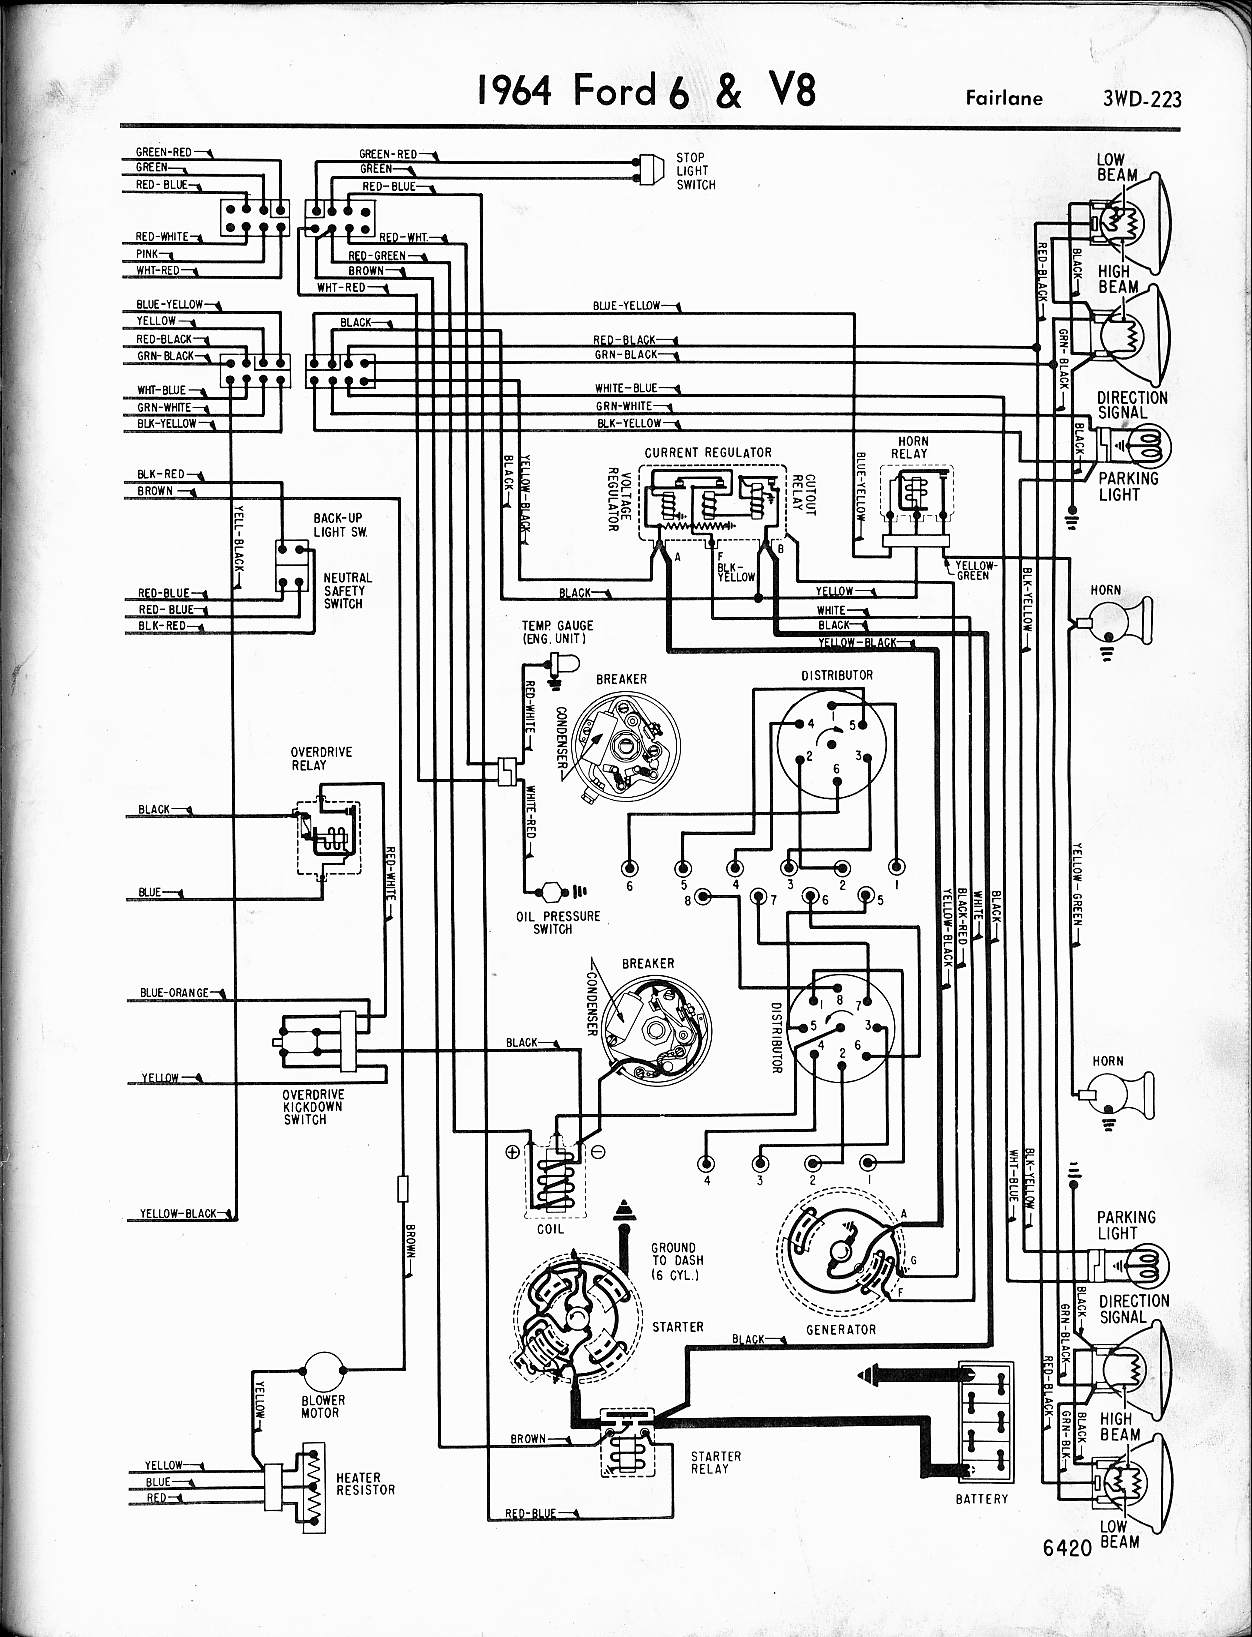 MWire5765 223 1968 mercury cyclone wiring diagram schematic best wiring library